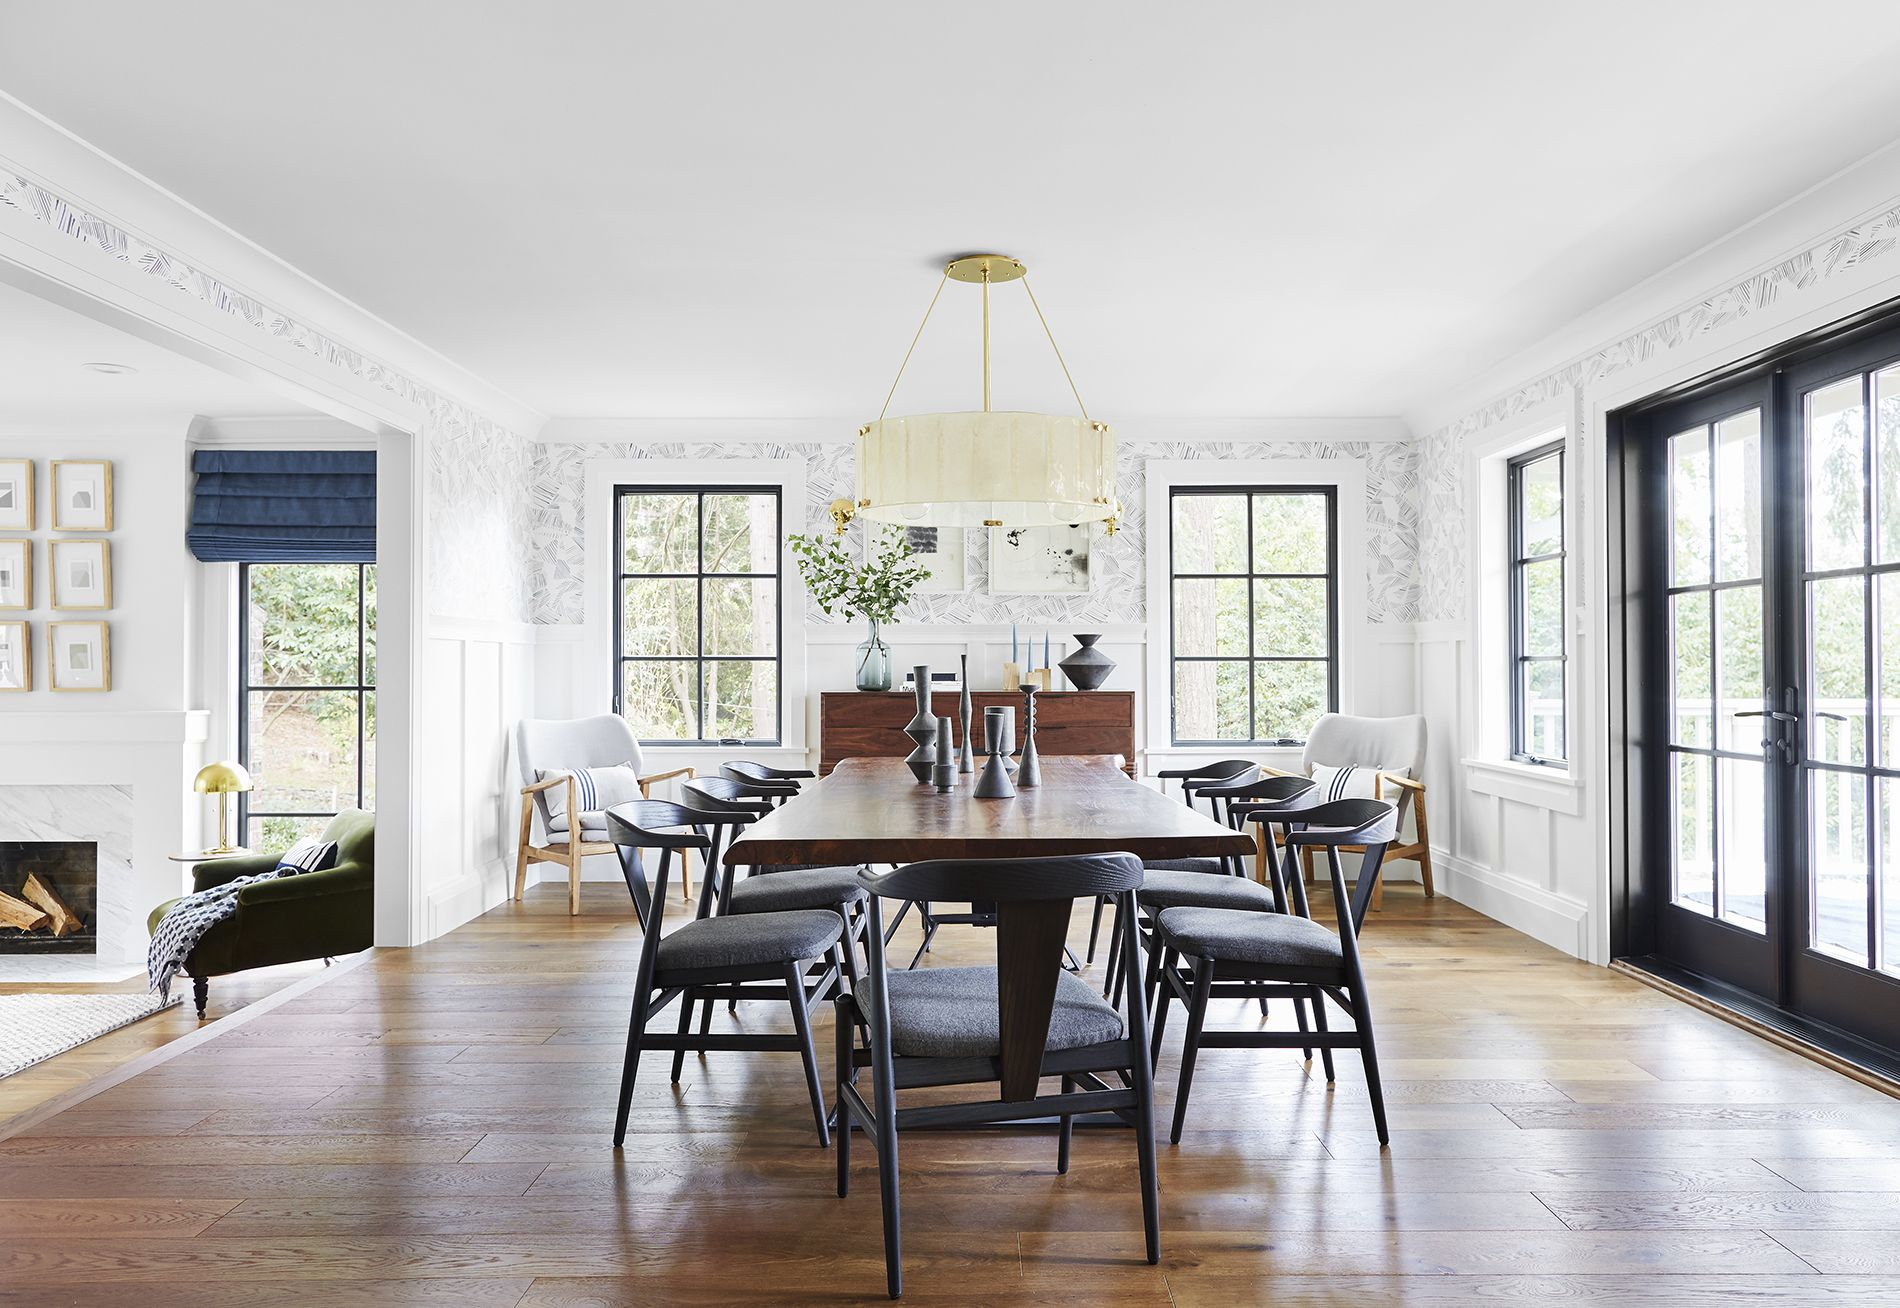 How to Furnish a Dining Room - Dining Room Design Ideas